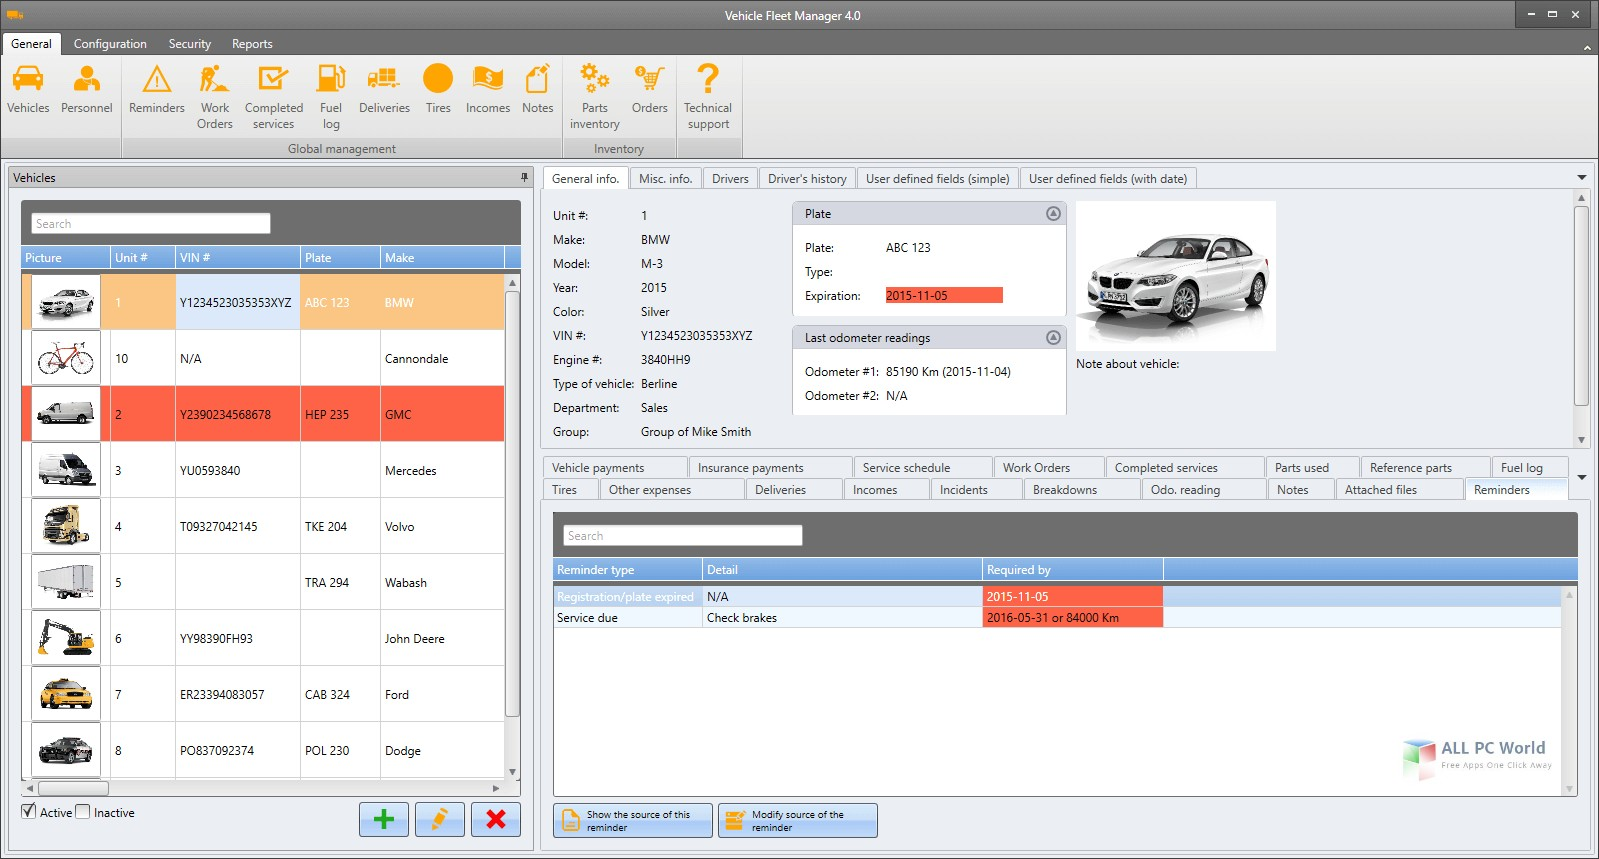 Vinity soft Vehicle Fleet Manager 4.0 Free Download